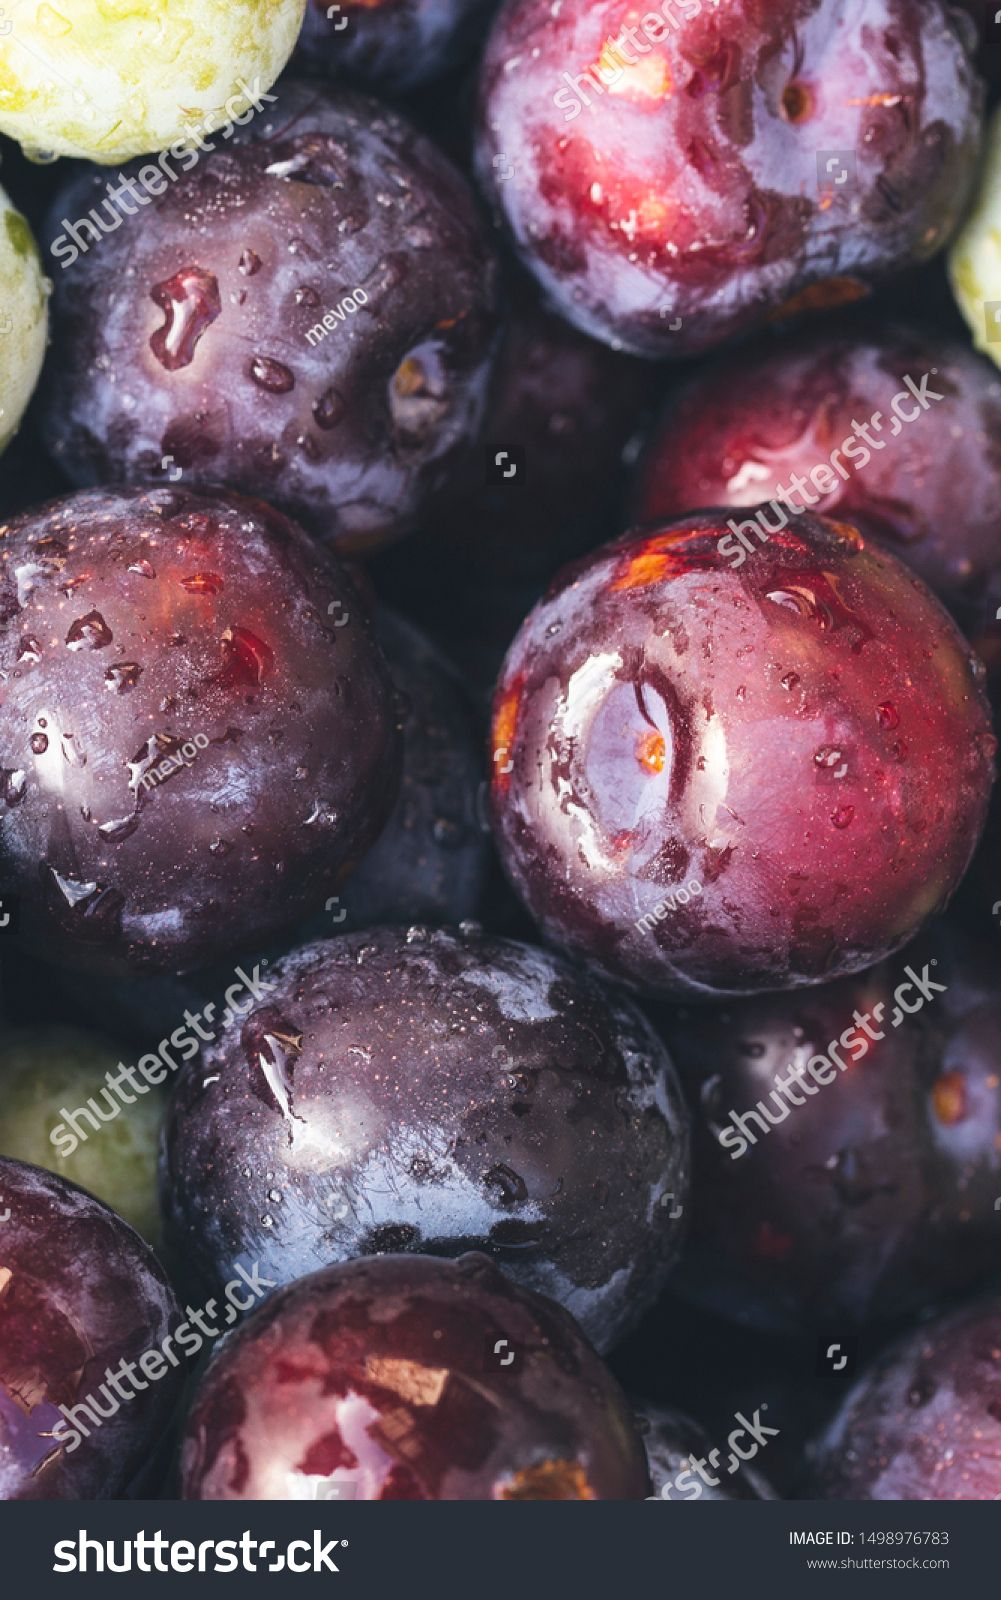 Stack of fresh organic plums for sale at food market #Sponsored , #Sponsored, #organic#fresh#Stack#plums